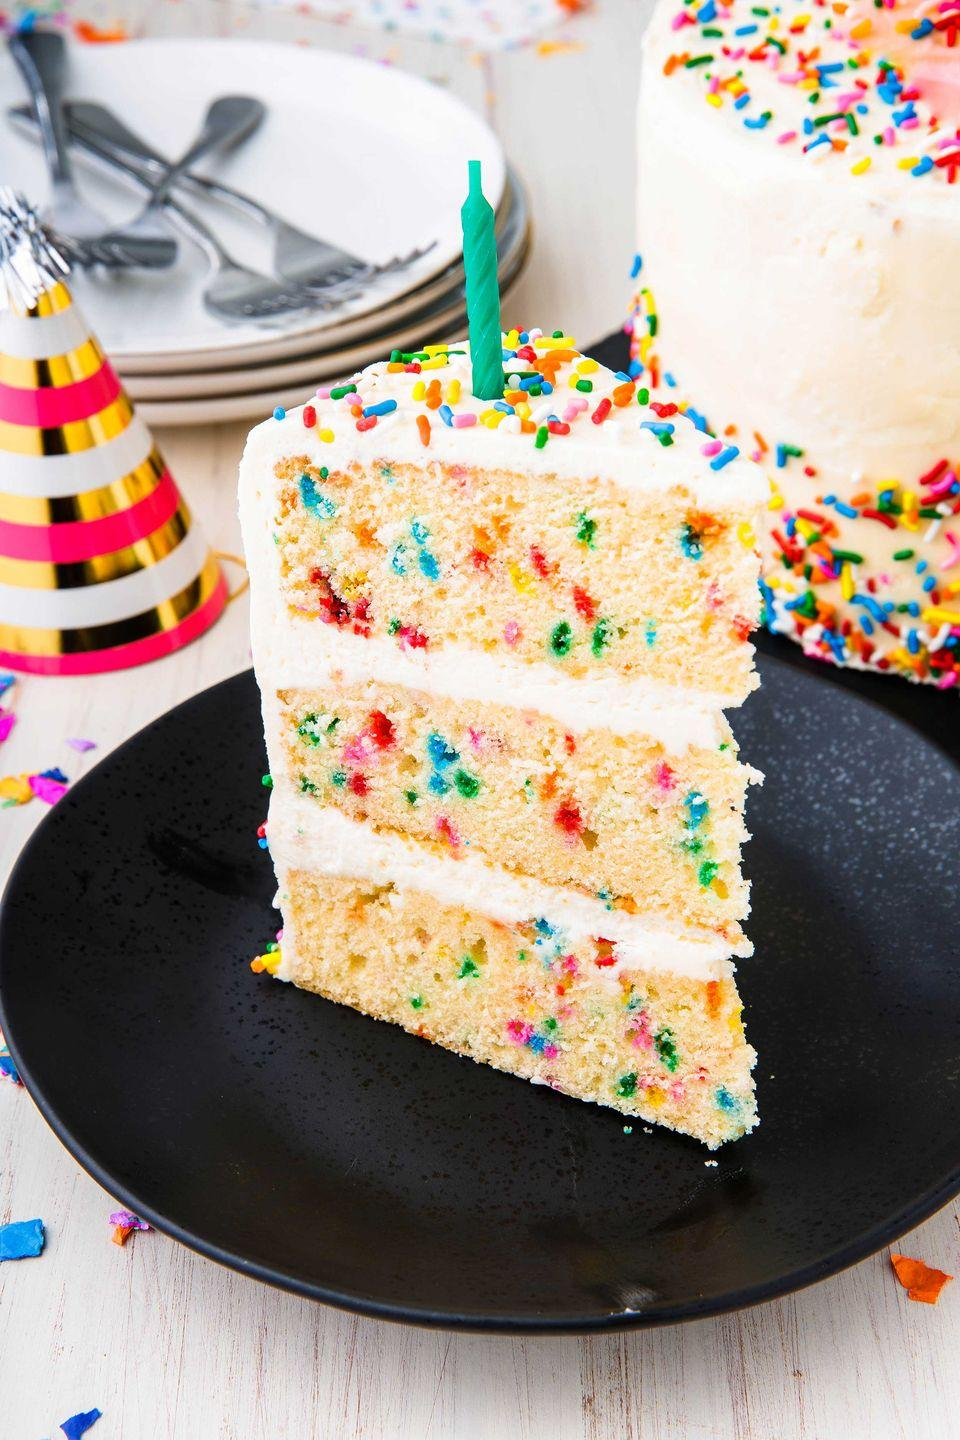 """<p>Funfetti brings the party. </p><p>Get the recipe from <a href=""""https://www.delish.com/cooking/recipe-ideas/a23120595/funfetti-cake-birthday-cake-recipe/"""" rel=""""nofollow noopener"""" target=""""_blank"""" data-ylk=""""slk:Delish"""" class=""""link rapid-noclick-resp"""">Delish</a>. </p>"""